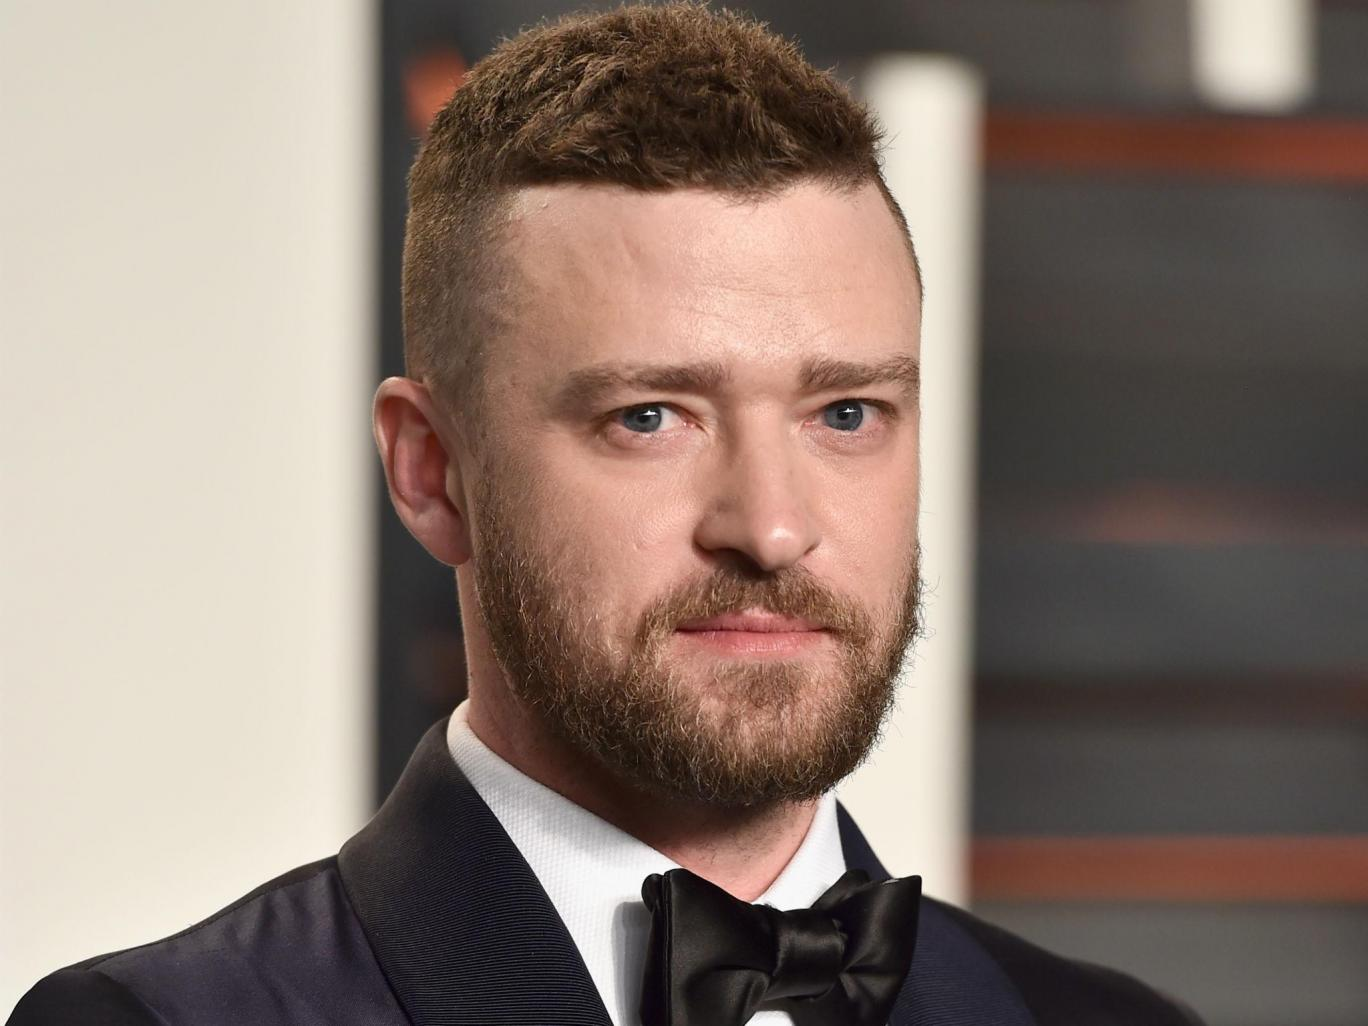 Justin timberlake haircut short fade haircut urmus Choice Image